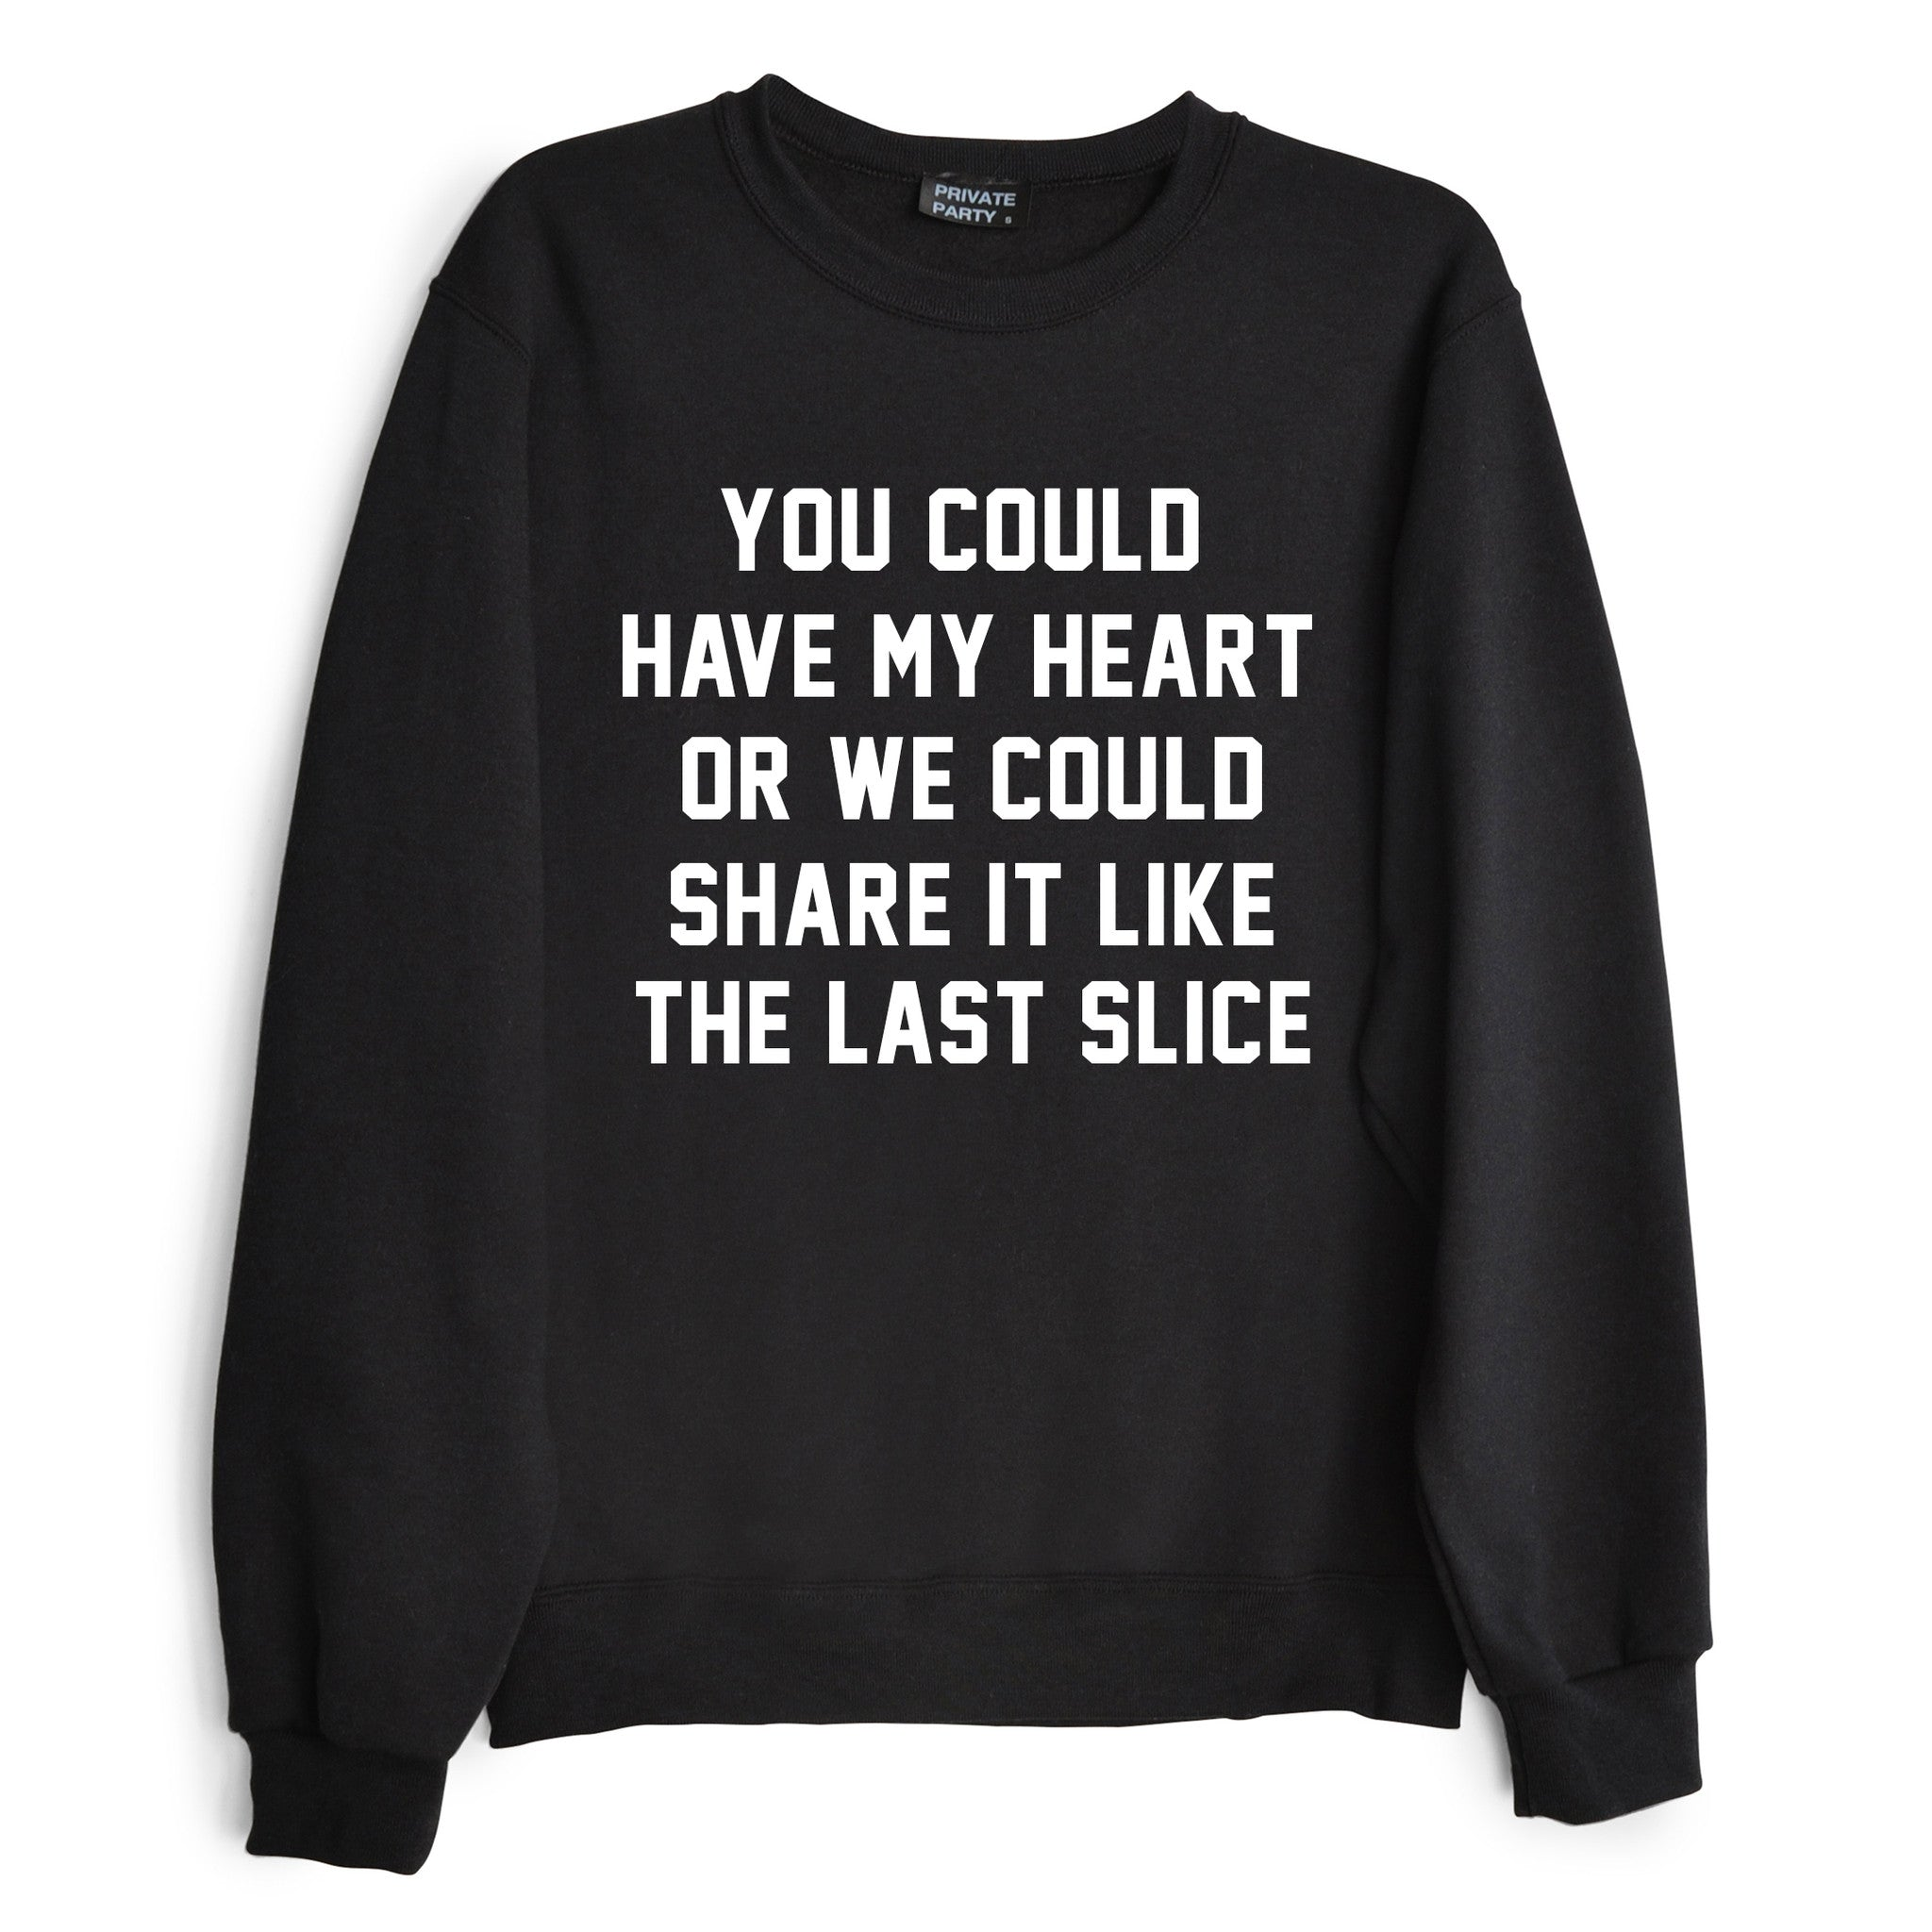 YOU COULD HAVE MY HEART OR WE COULD SHARE IT LIKE THE LAST SLICE [SWEATSHIRT]